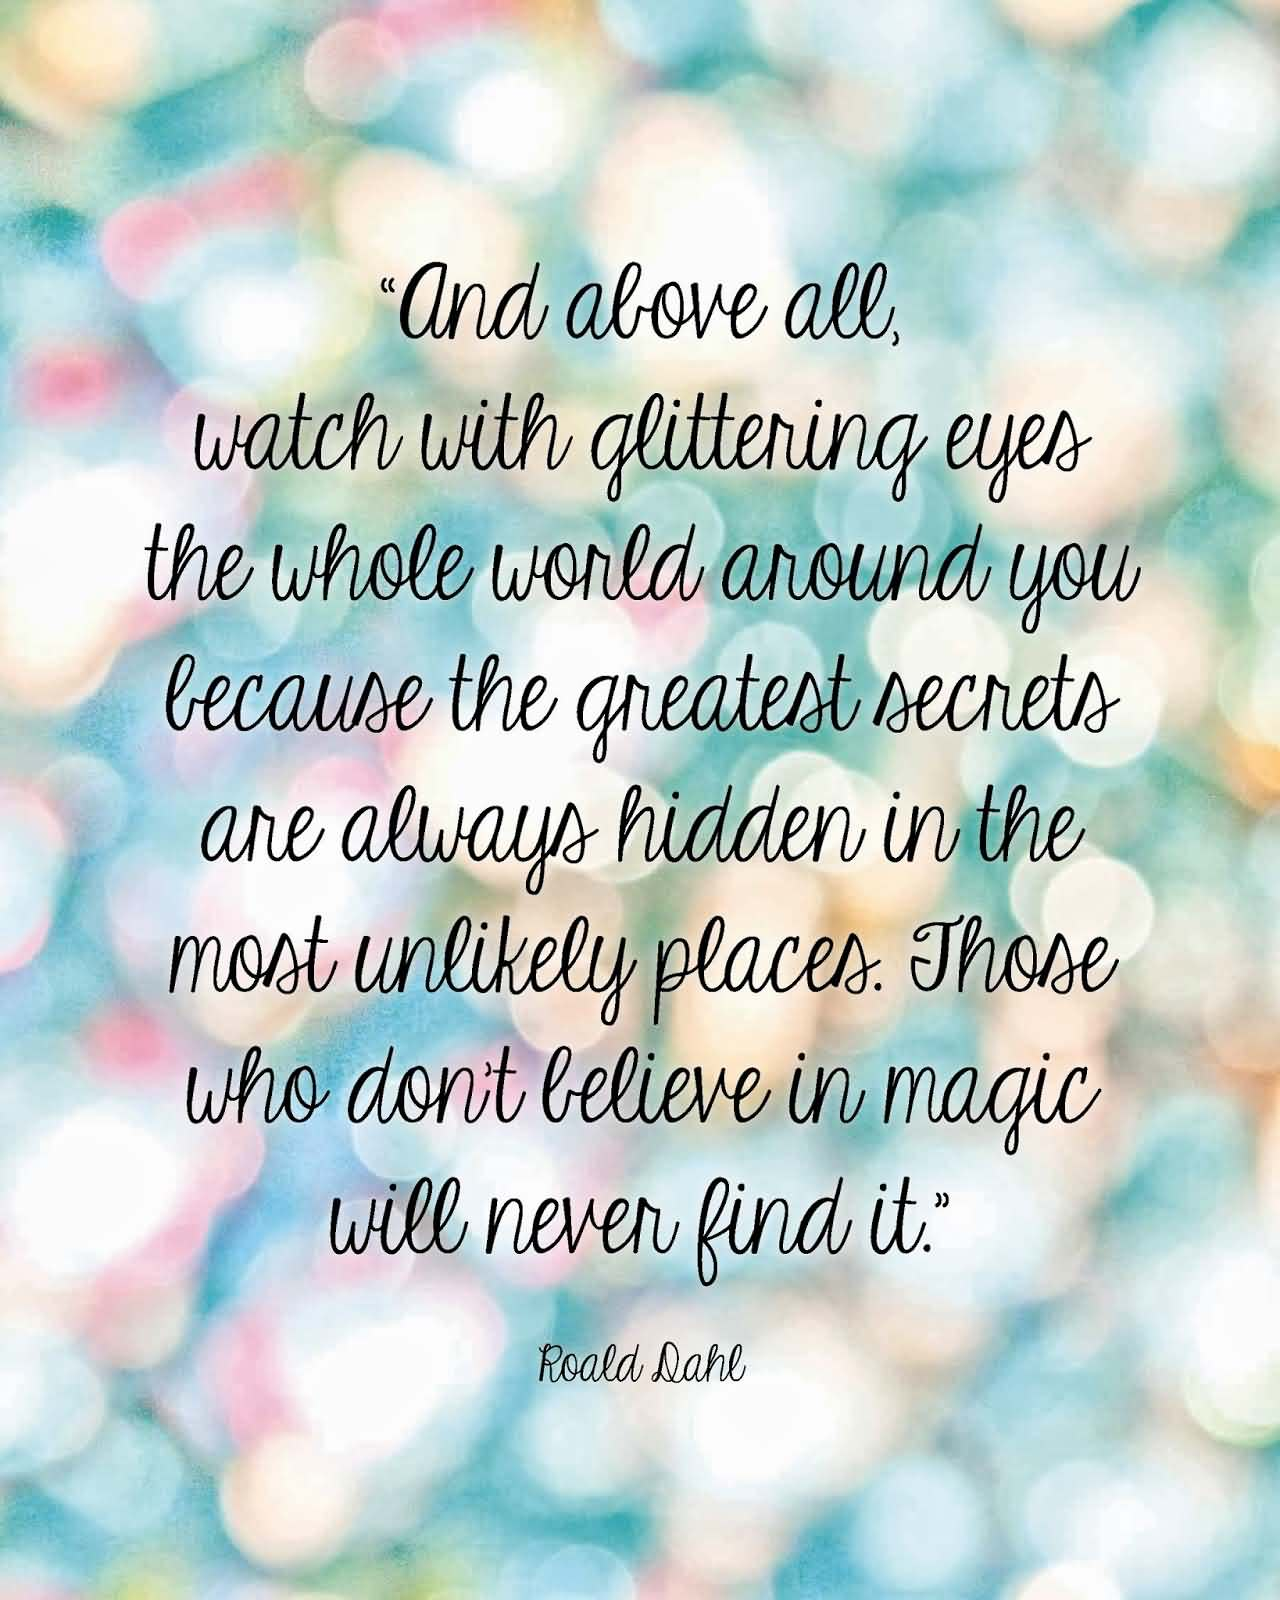 And above all, watch with glittering eyes the whole world around you because the greatest secrets are always hidden in the most unlikely pl... Roald Dahl